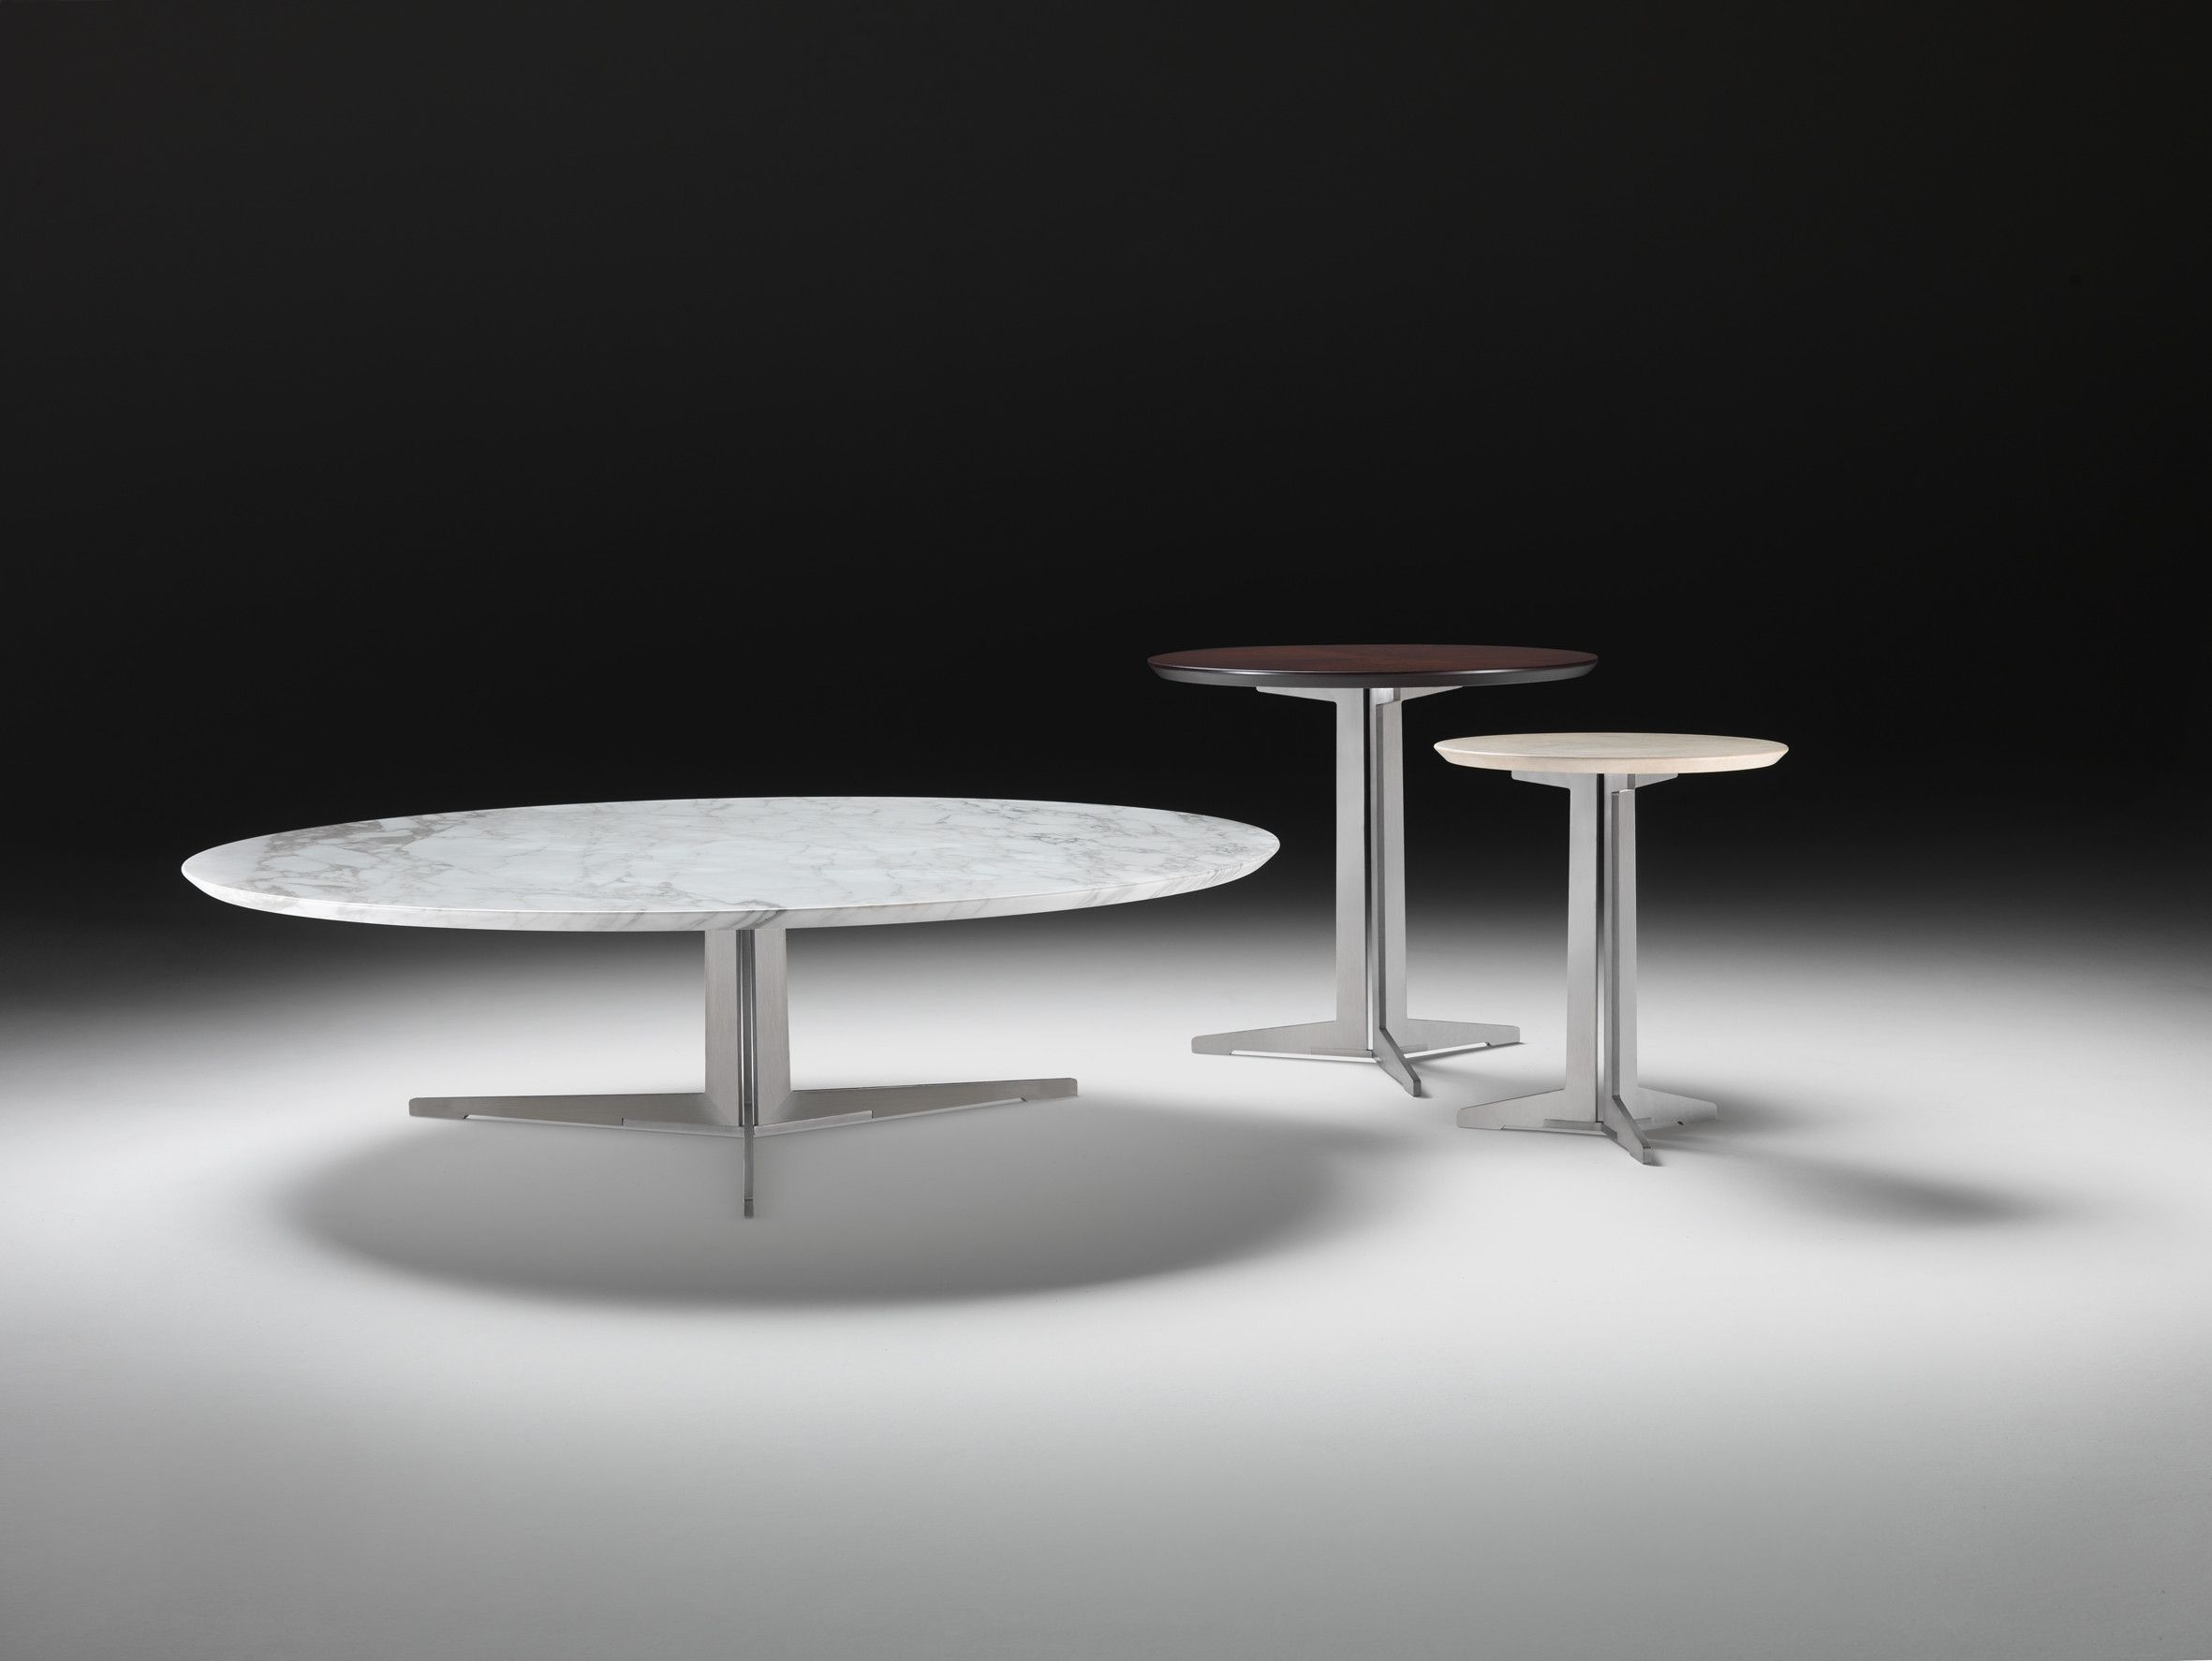 Permalink to Luxe De Tables Basses Fly